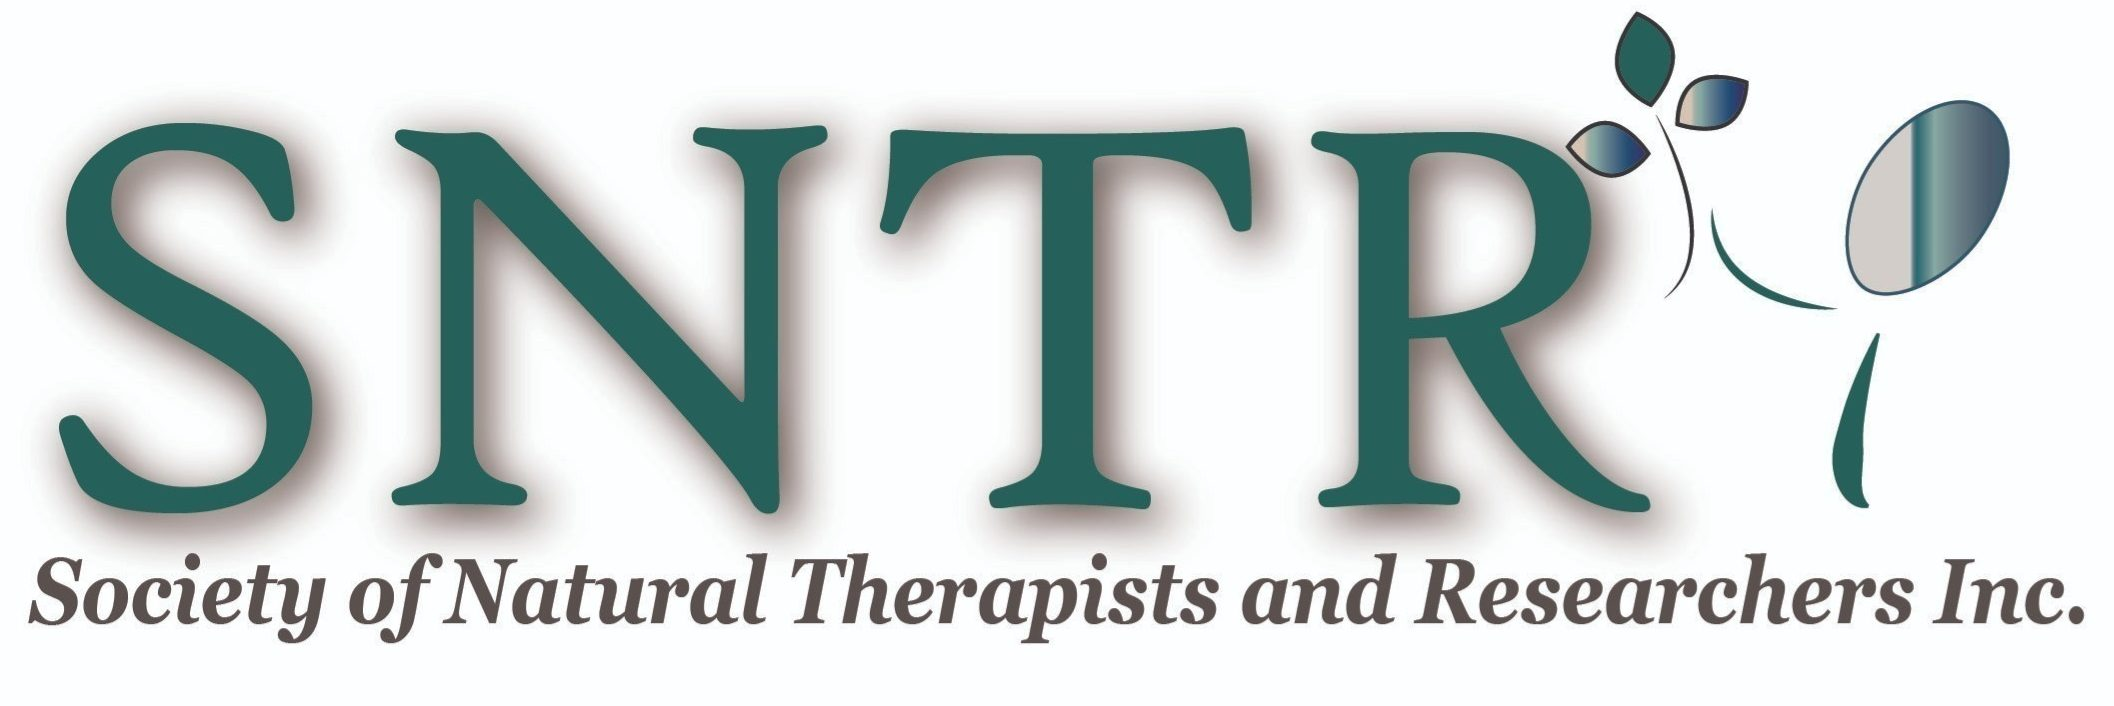 Ilenia is Member of the Society of Natural Therapists and Researchers